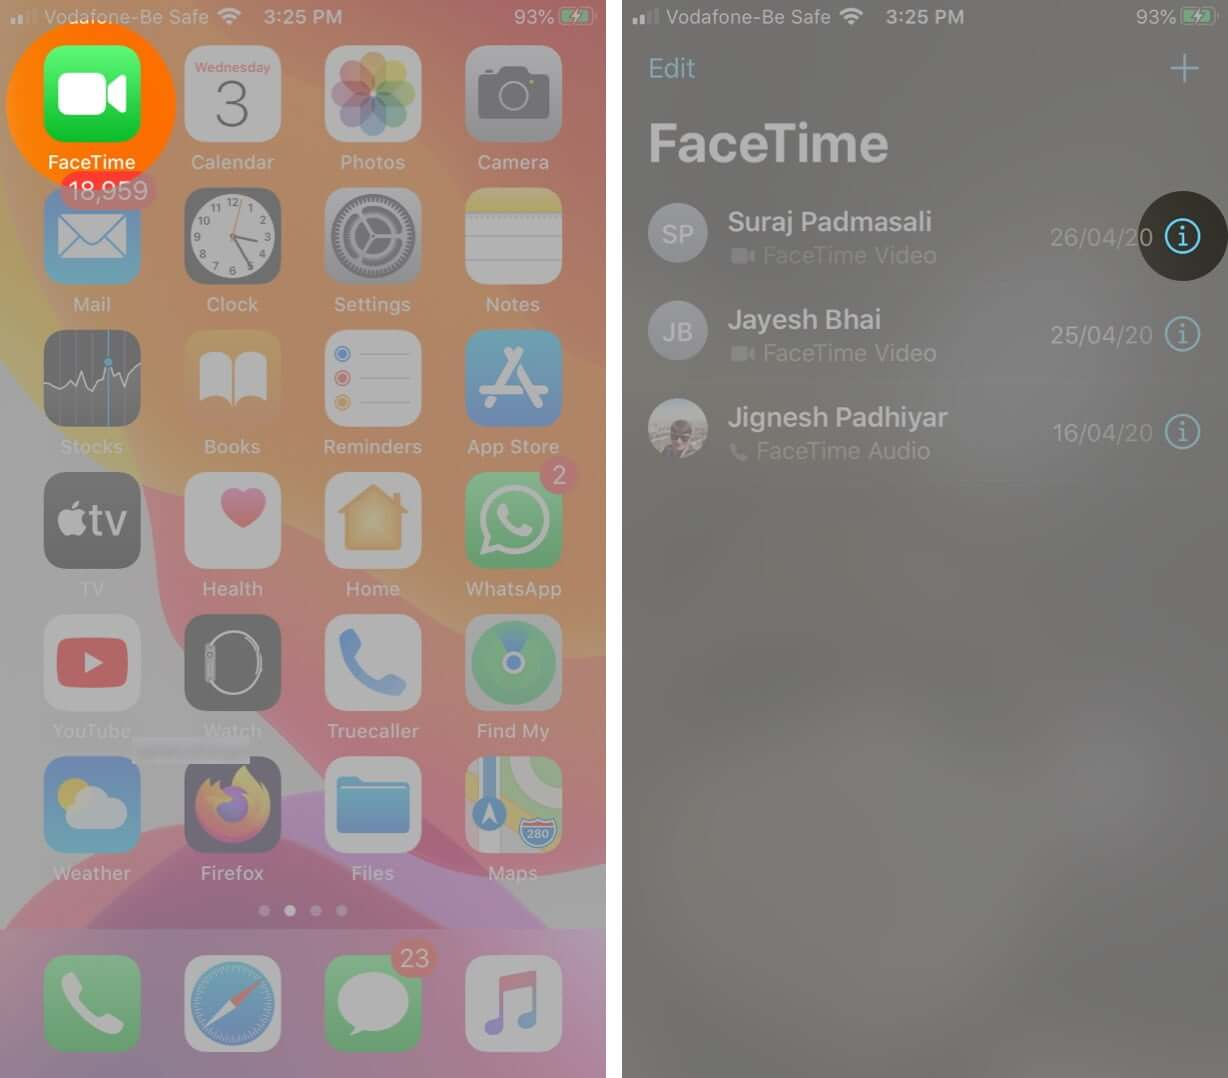 Open FaceTime App and Tap on i icon Next to Contact Name